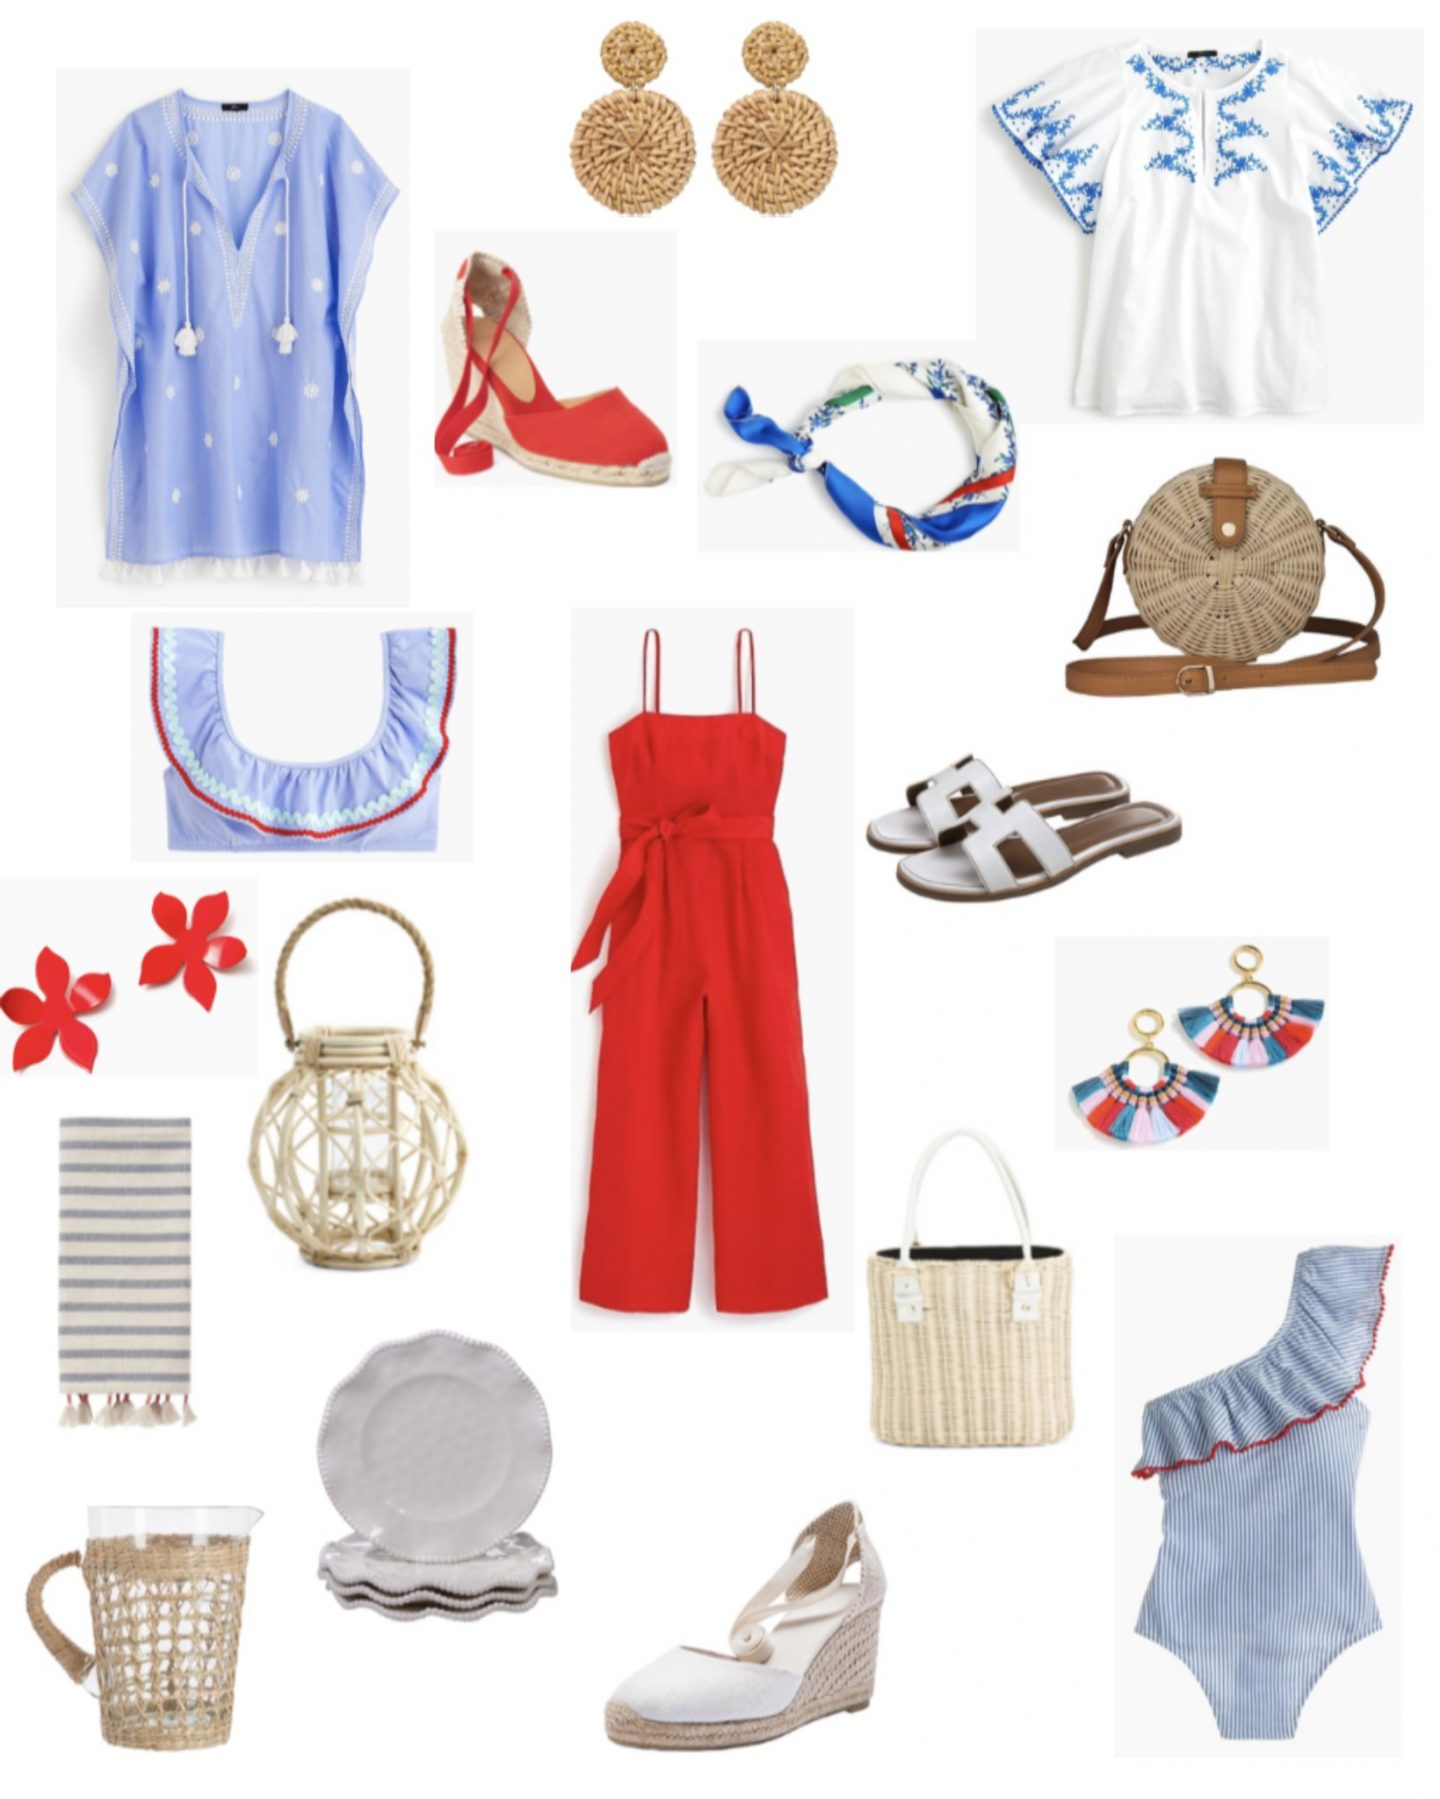 wicker earrings, blue tassel coverup, white embroidered top, red j.crew jumpsuit, pottery barn pitcher, white esapdrille wedges, white sandals, summer wicker bag, one piece swuimsuit, flower earrings, silk scarf, outdoor plates, tassel earrings, dish towel, outdoor entertaining